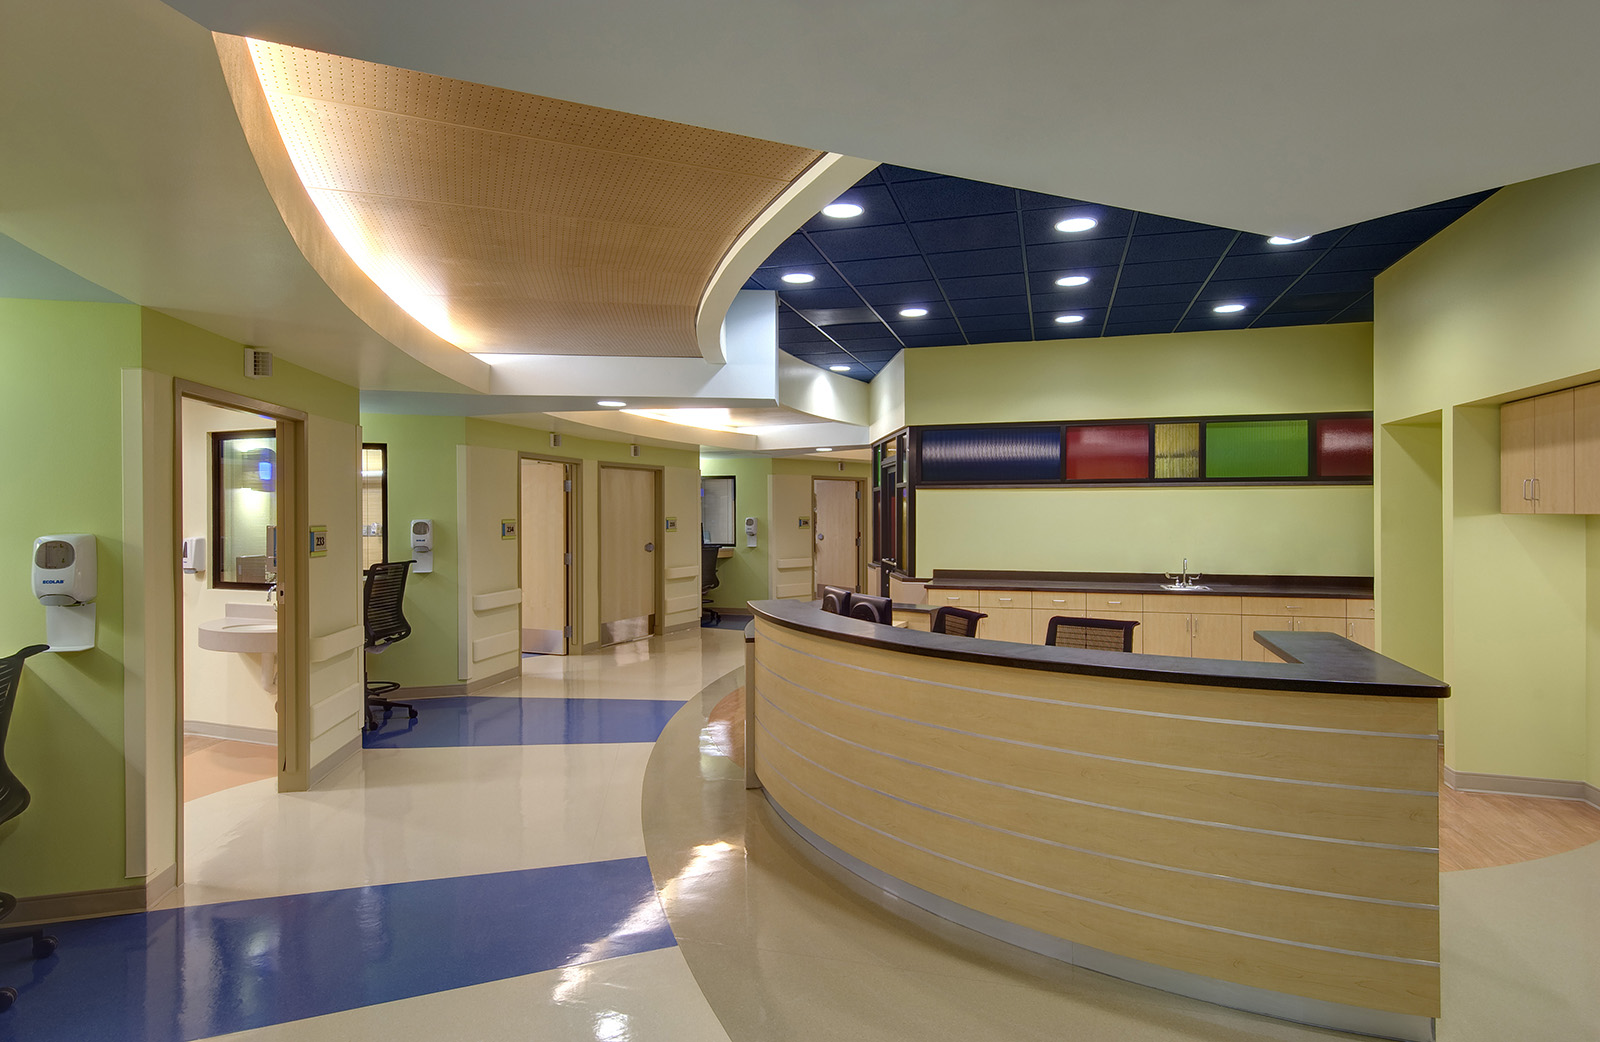 tmc-pediatric-hospital-interior